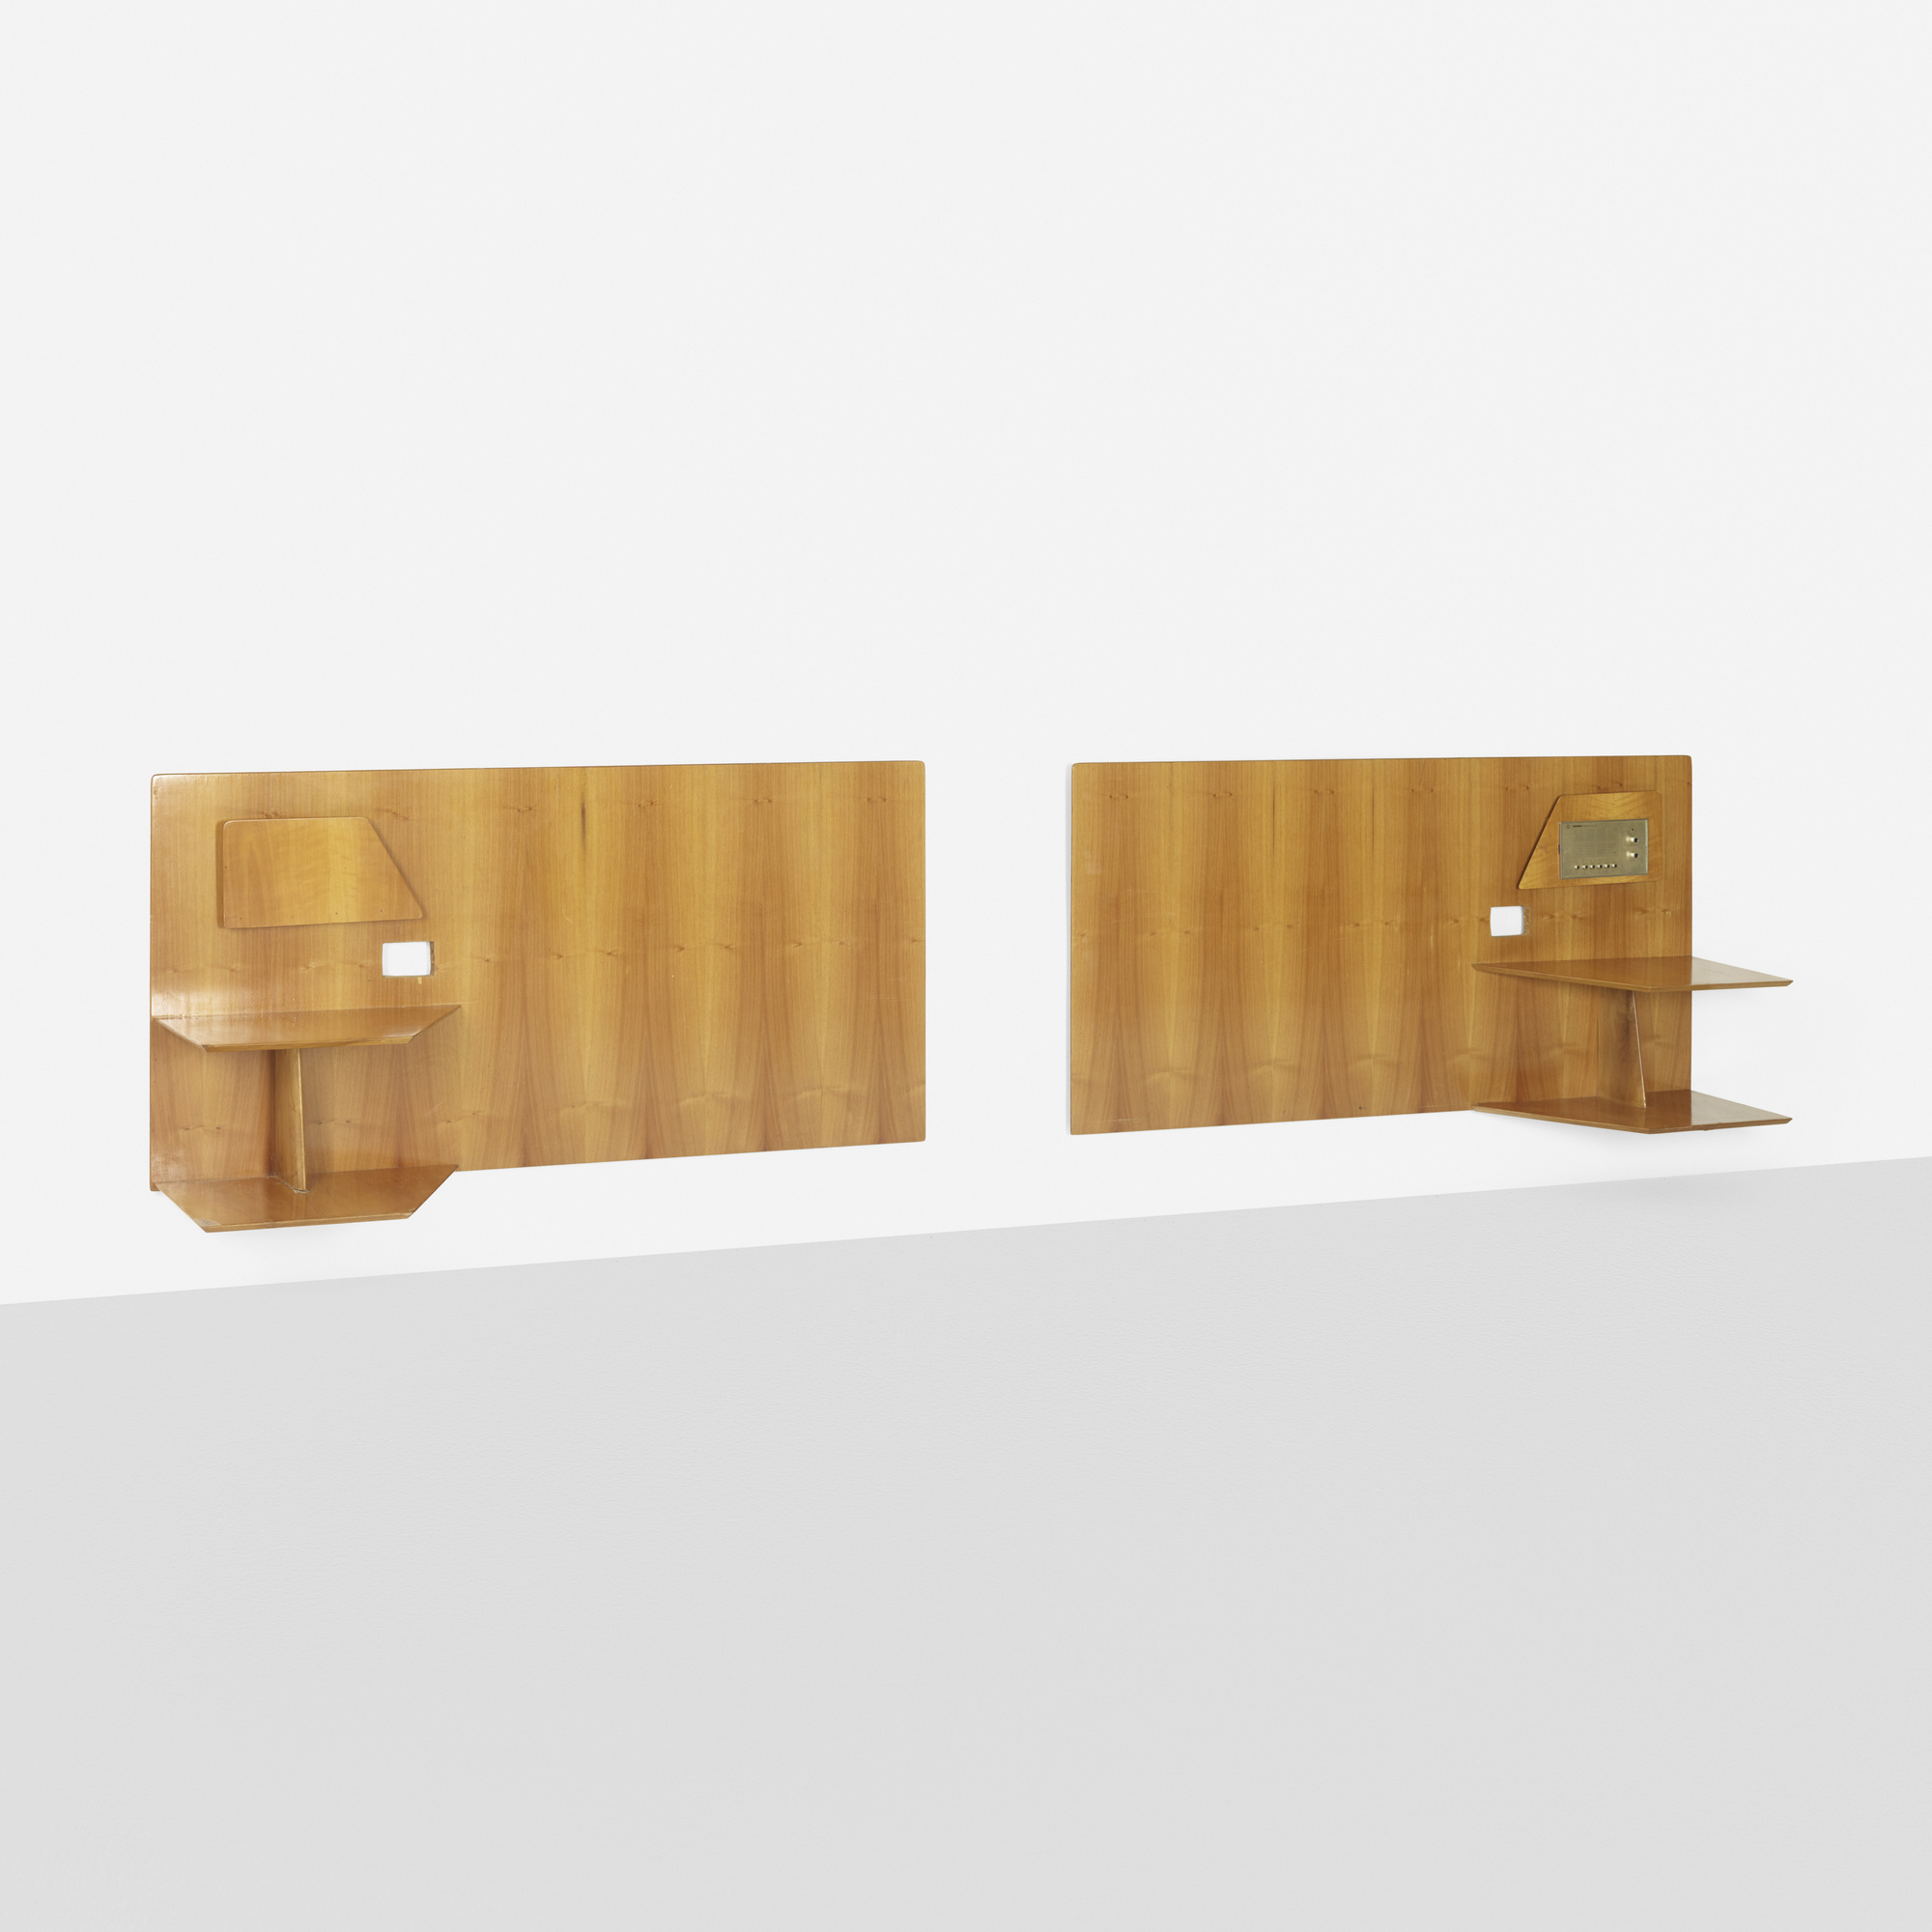 205: Gio Ponti / pair of headboards from the Royal Hotel, Naples (1 of 1)